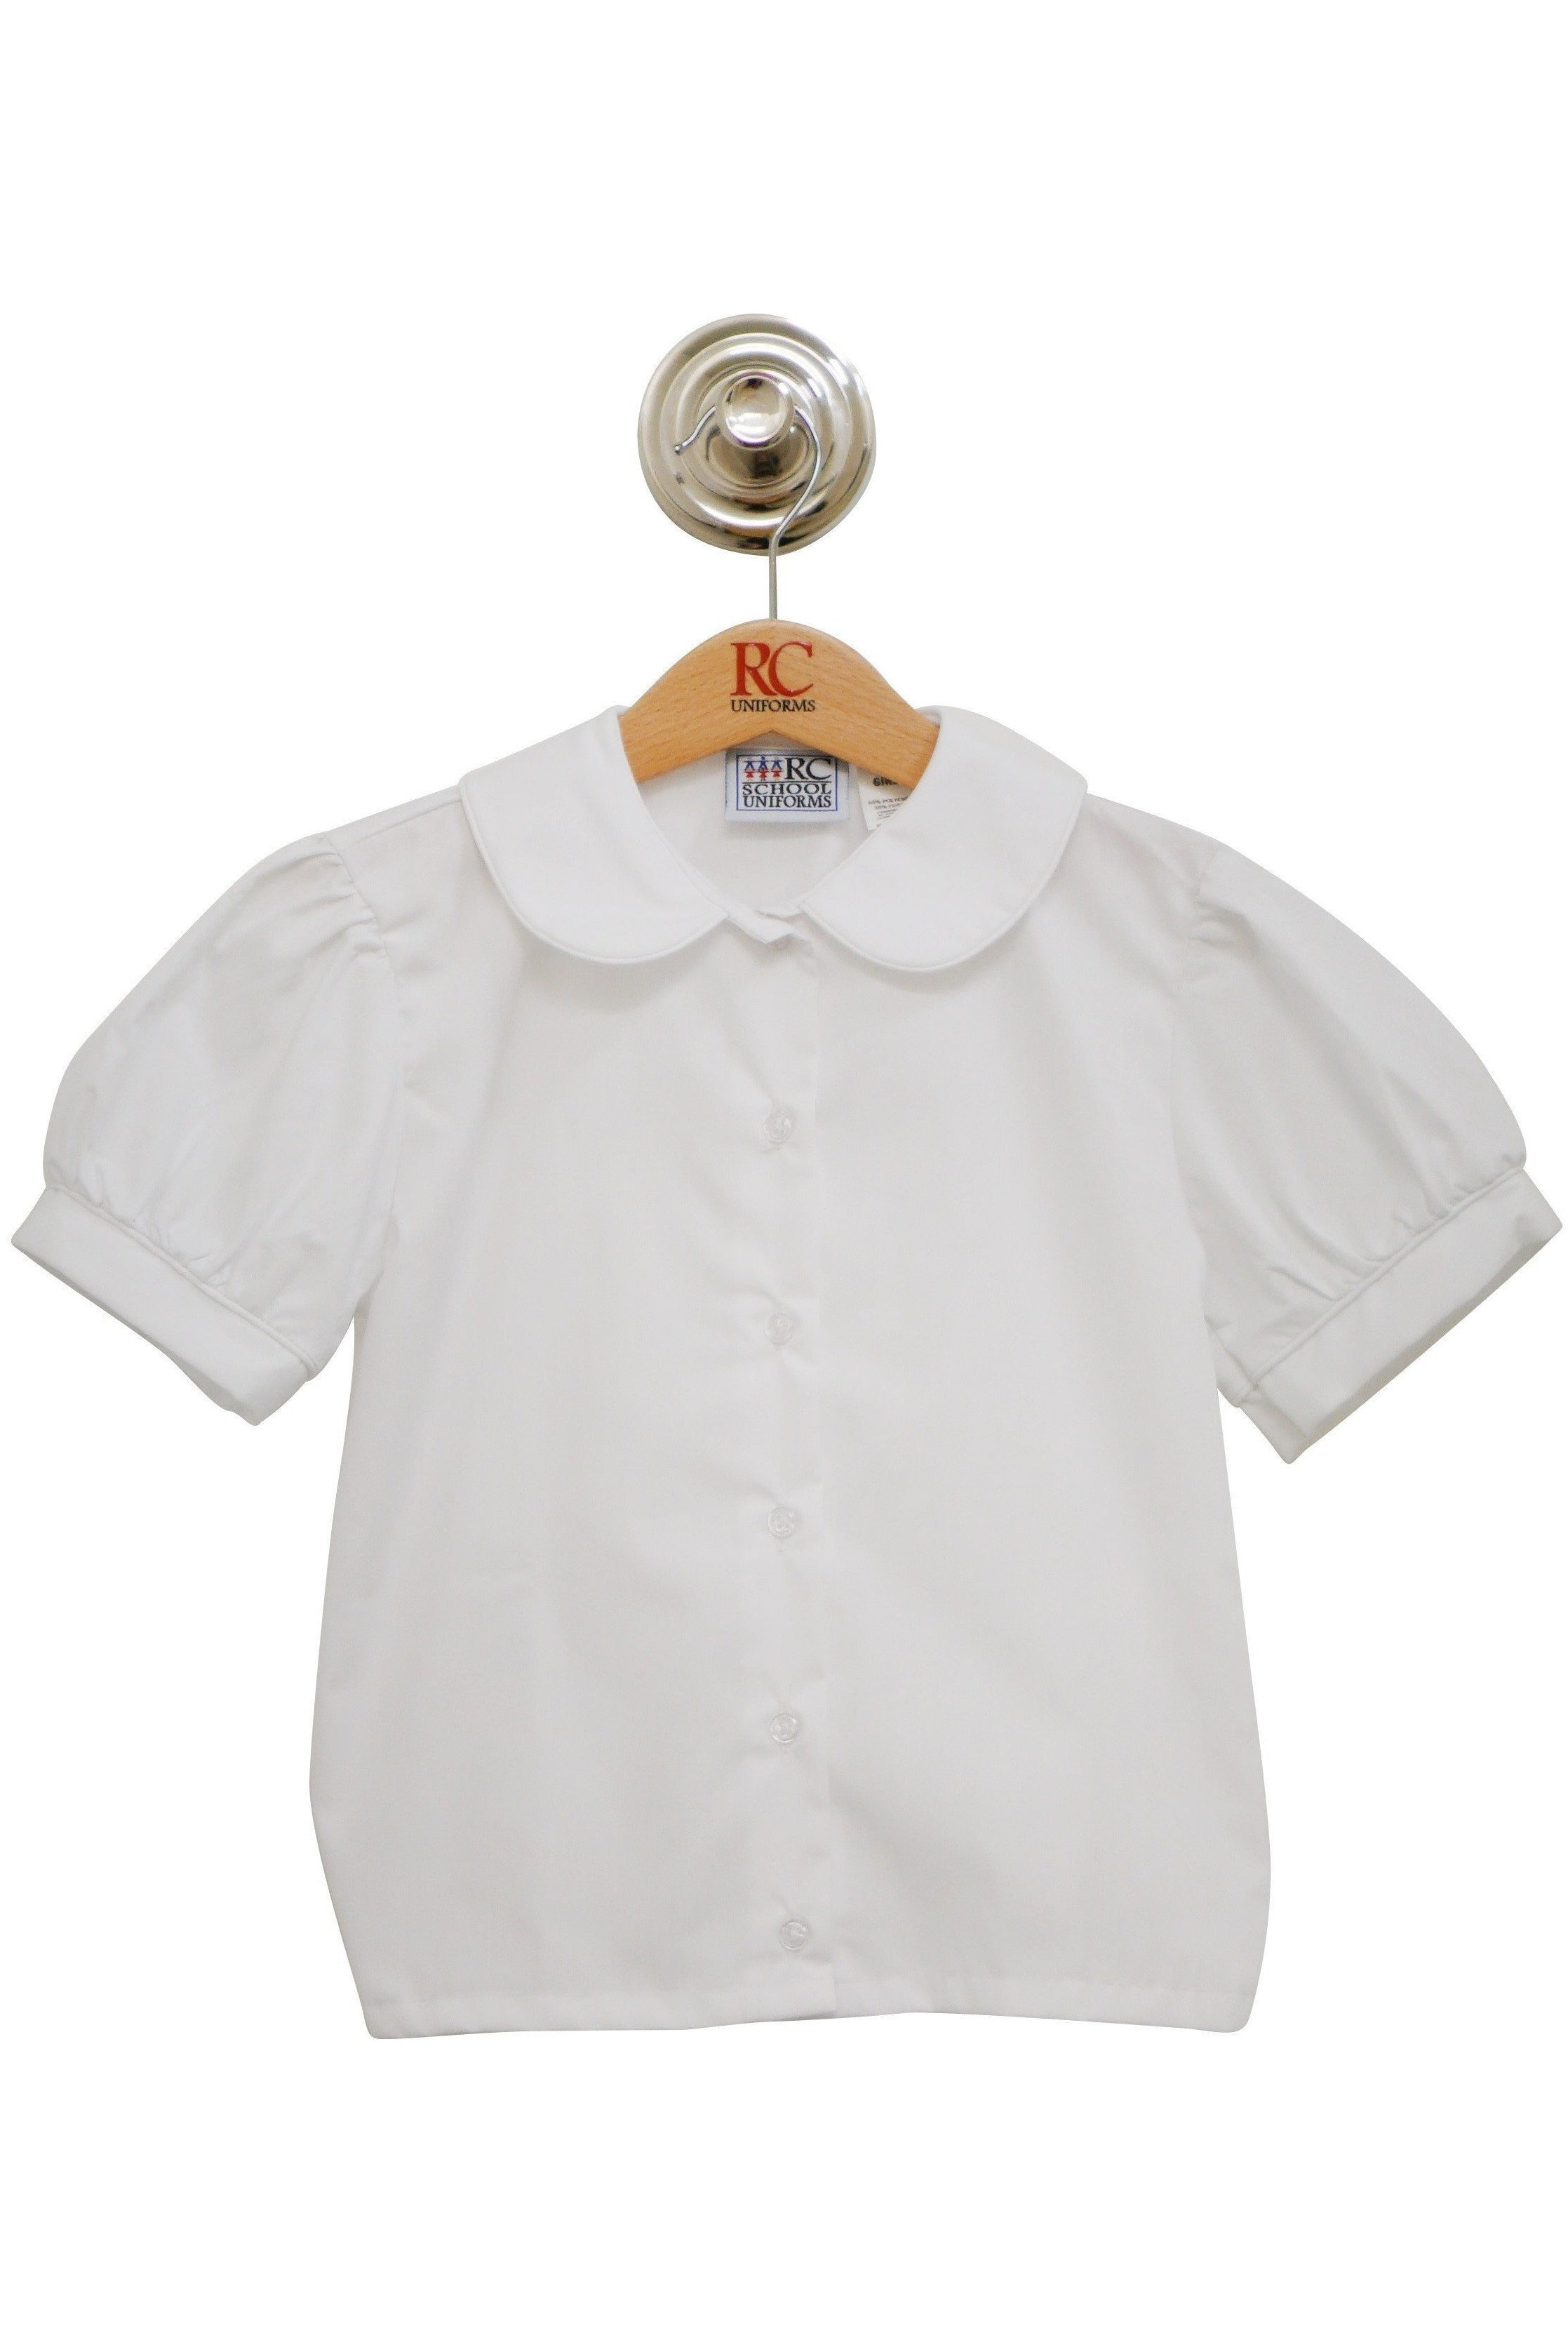 Puff Sleeve Peter Pan Blouse - RC Uniforms